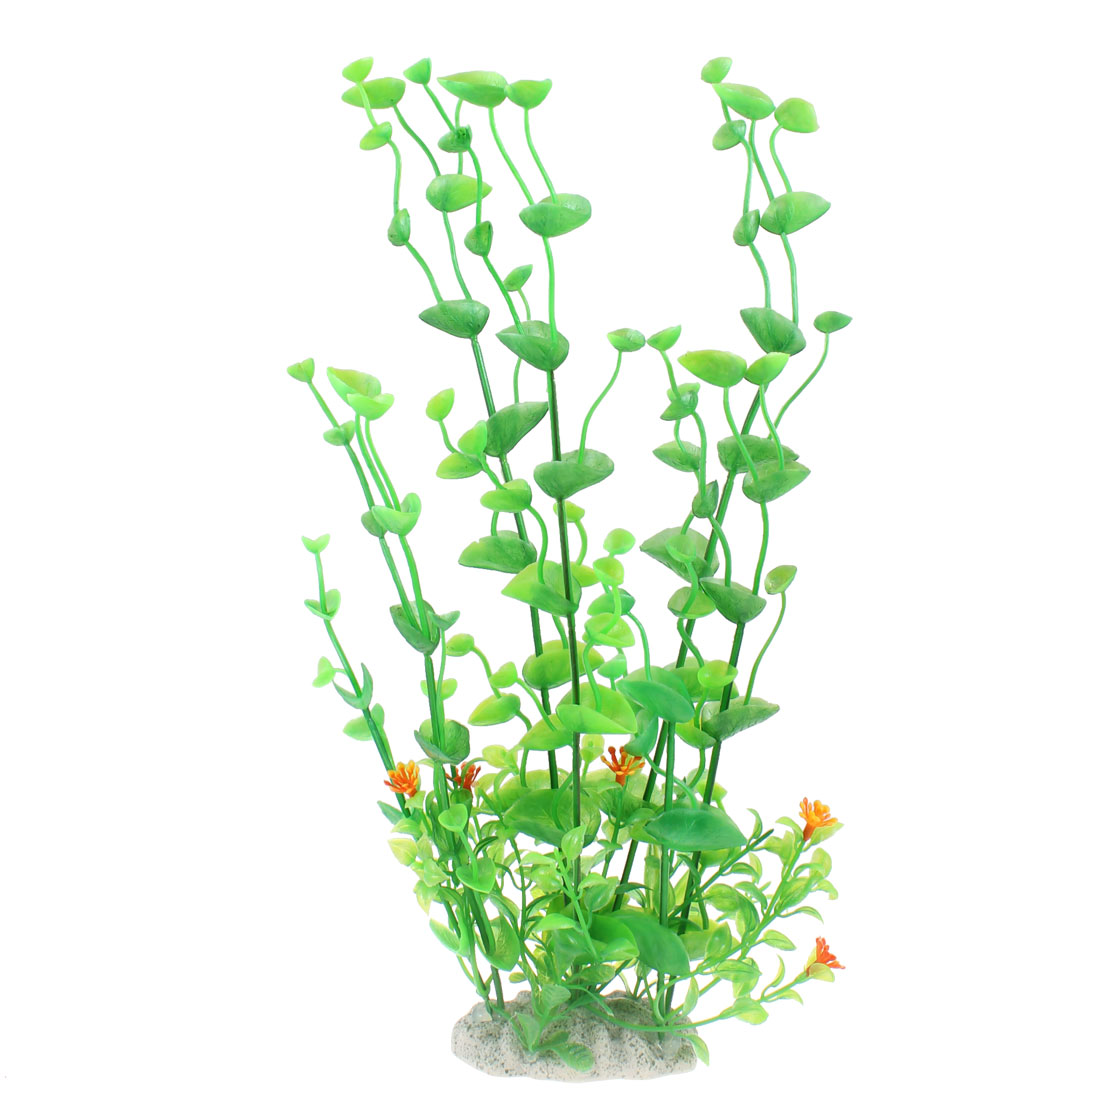 33cm High Green Manmade Shell Shaped Water Grass for Fish Tank Decor